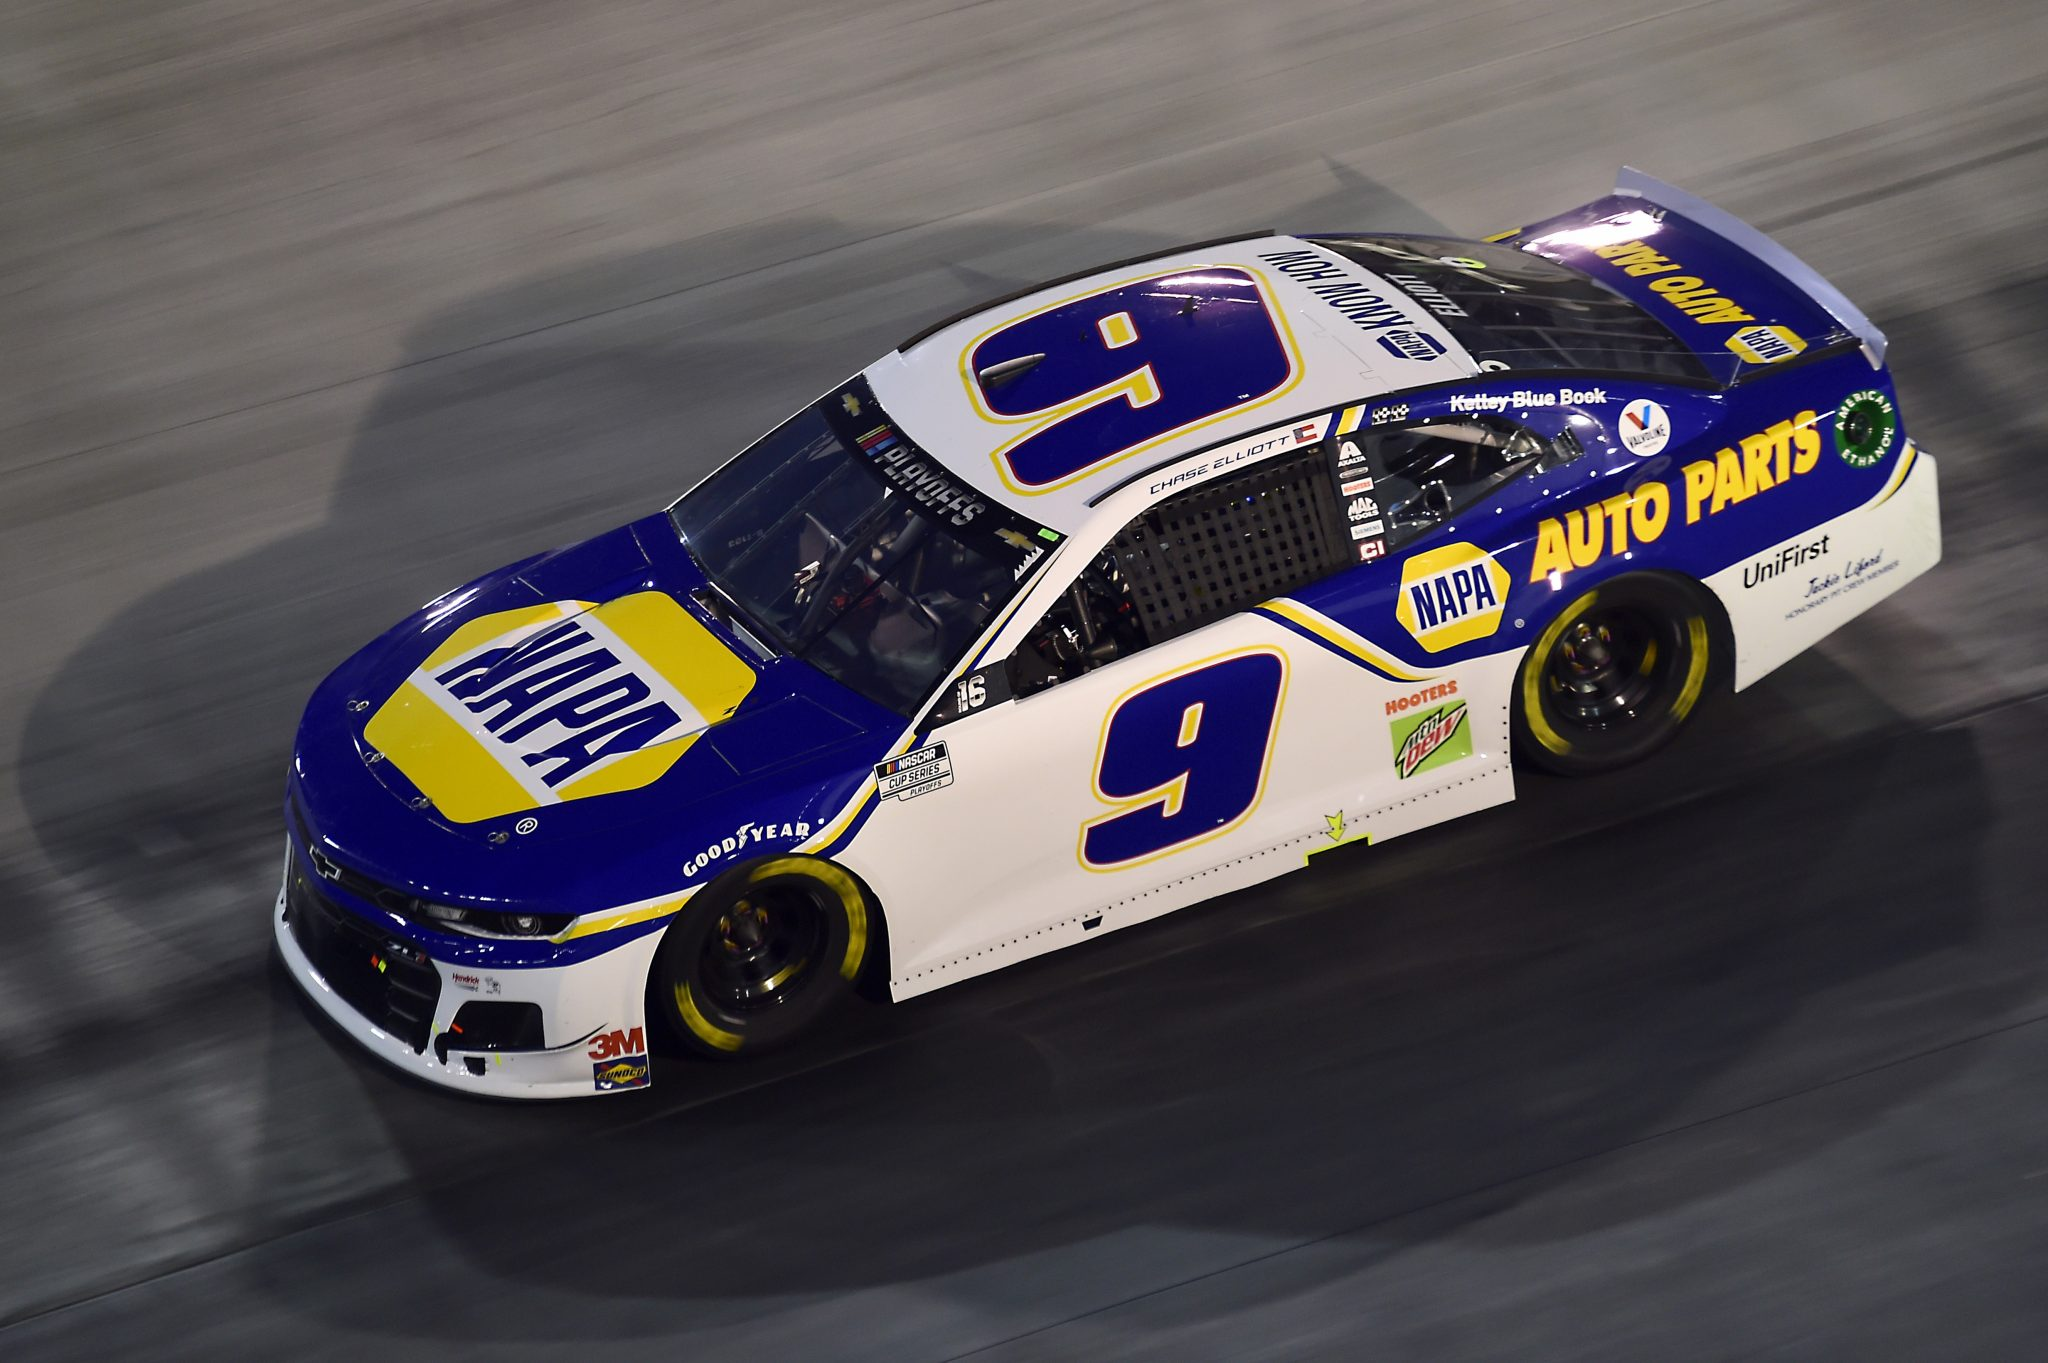 BRISTOL, TENNESSEE - SEPTEMBER 19: Chase Elliott, driver of the #9 NAPA Auto Parts Chevrolet, drives during the NASCAR Cup Series Bass Pro Shops Night Race at Bristol Motor Speedway on September 19, 2020 in Bristol, Tennessee. (Photo by Jared C. Tilton/Getty Images) | Getty Images